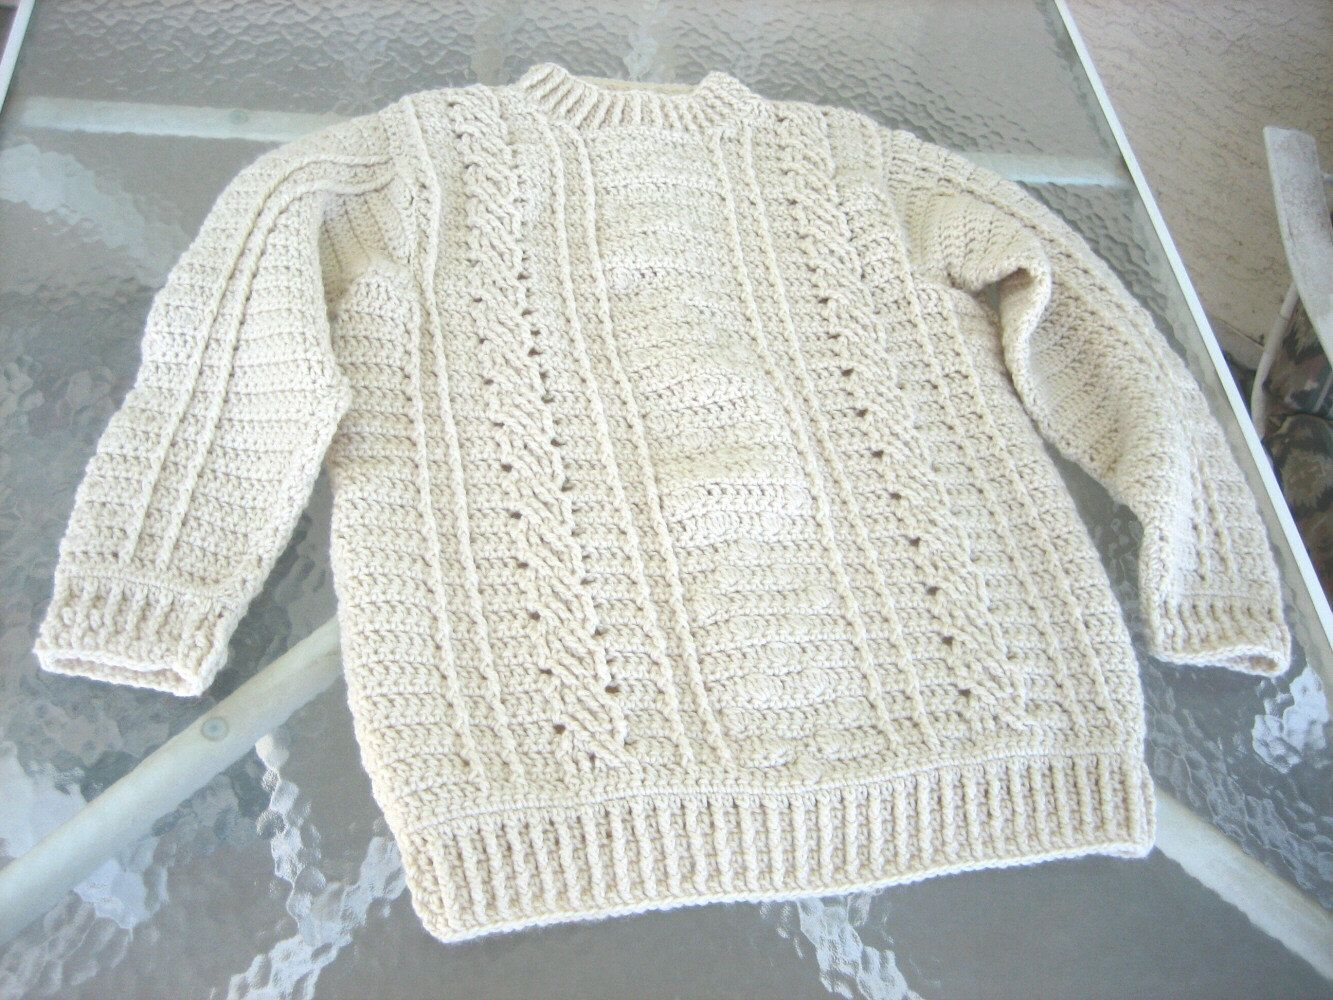 Knitted sweater for beginners summary a nearly seamless baby knitted sweater for beginners summary a nearly seamless baby sweater on two needles with yoke bankloansurffo Gallery